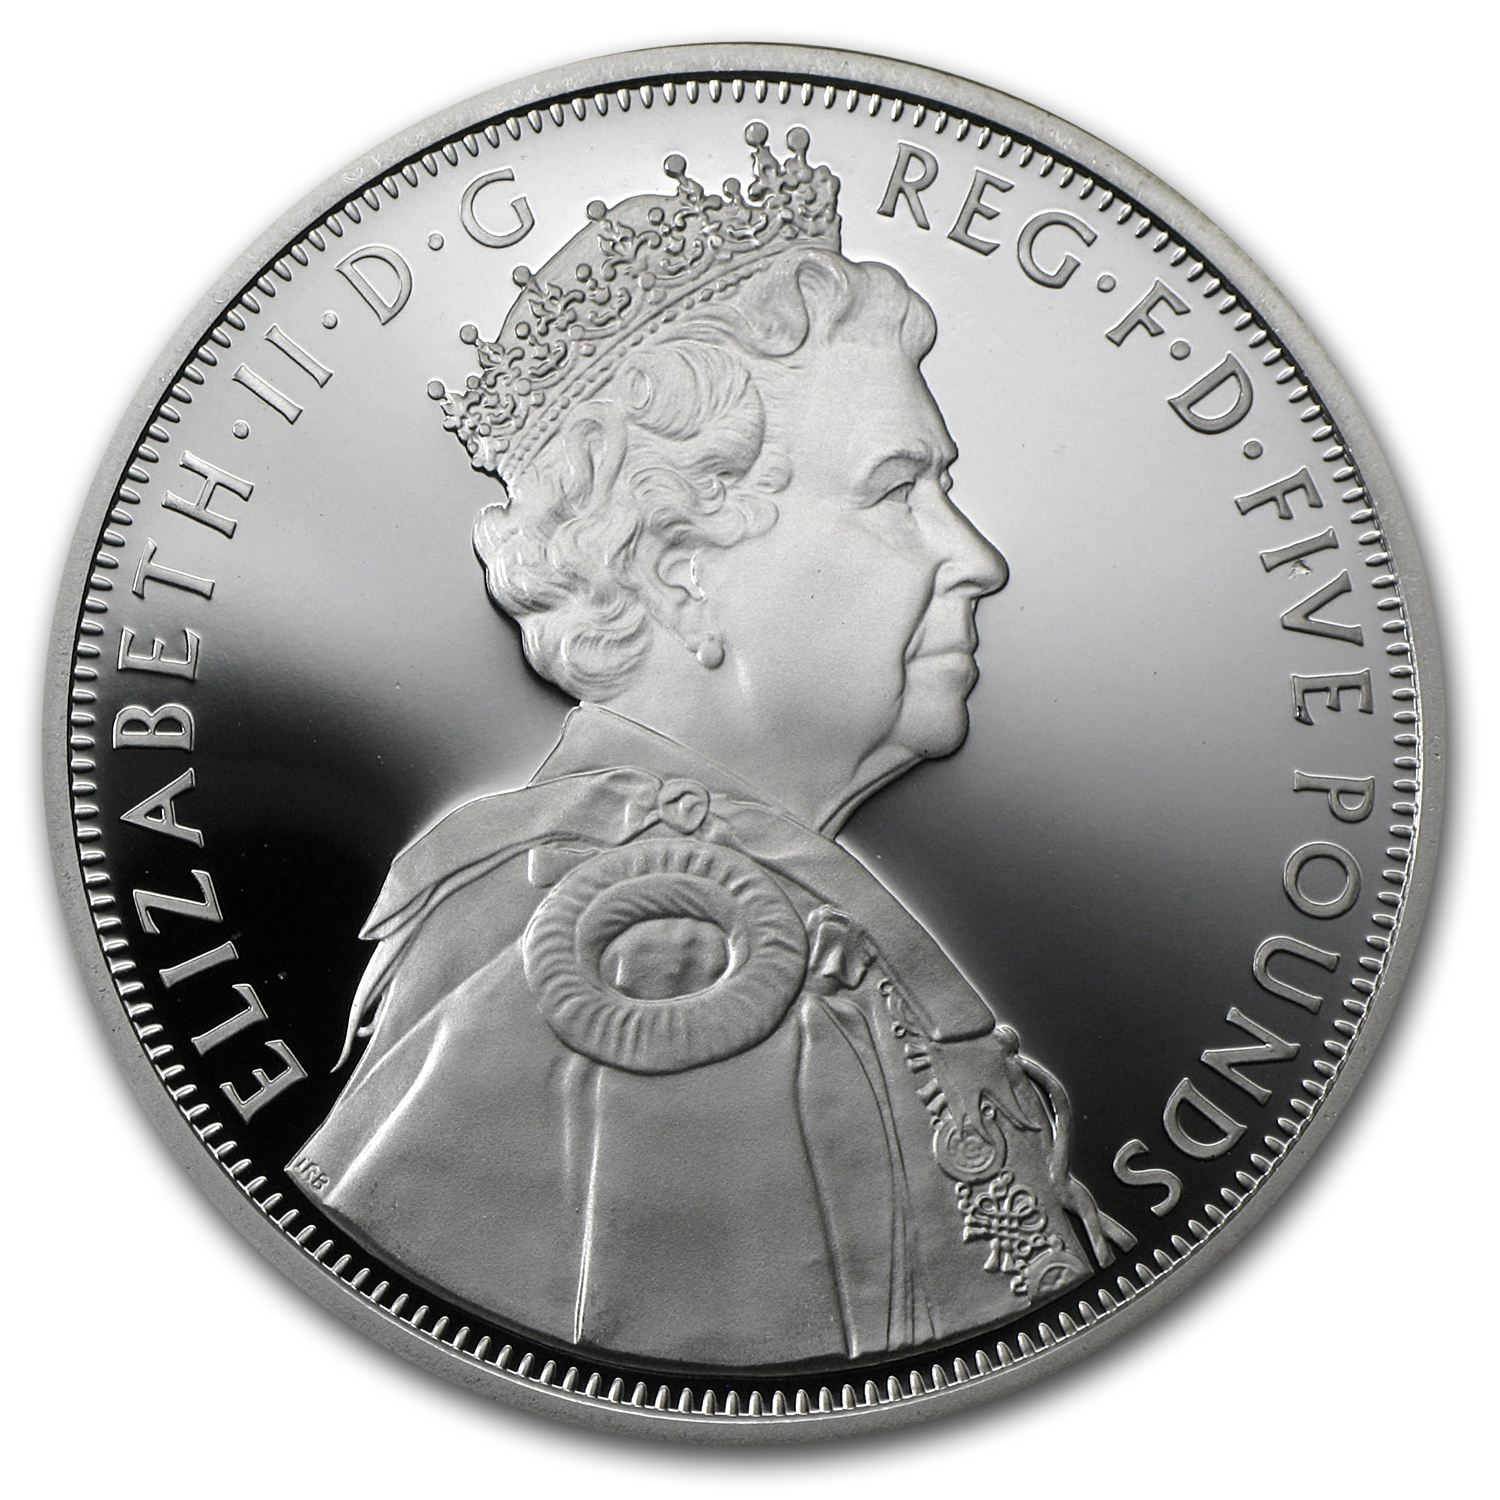 2012 Great Britain Silver £5 Queen's Diamond Jubilee Proof